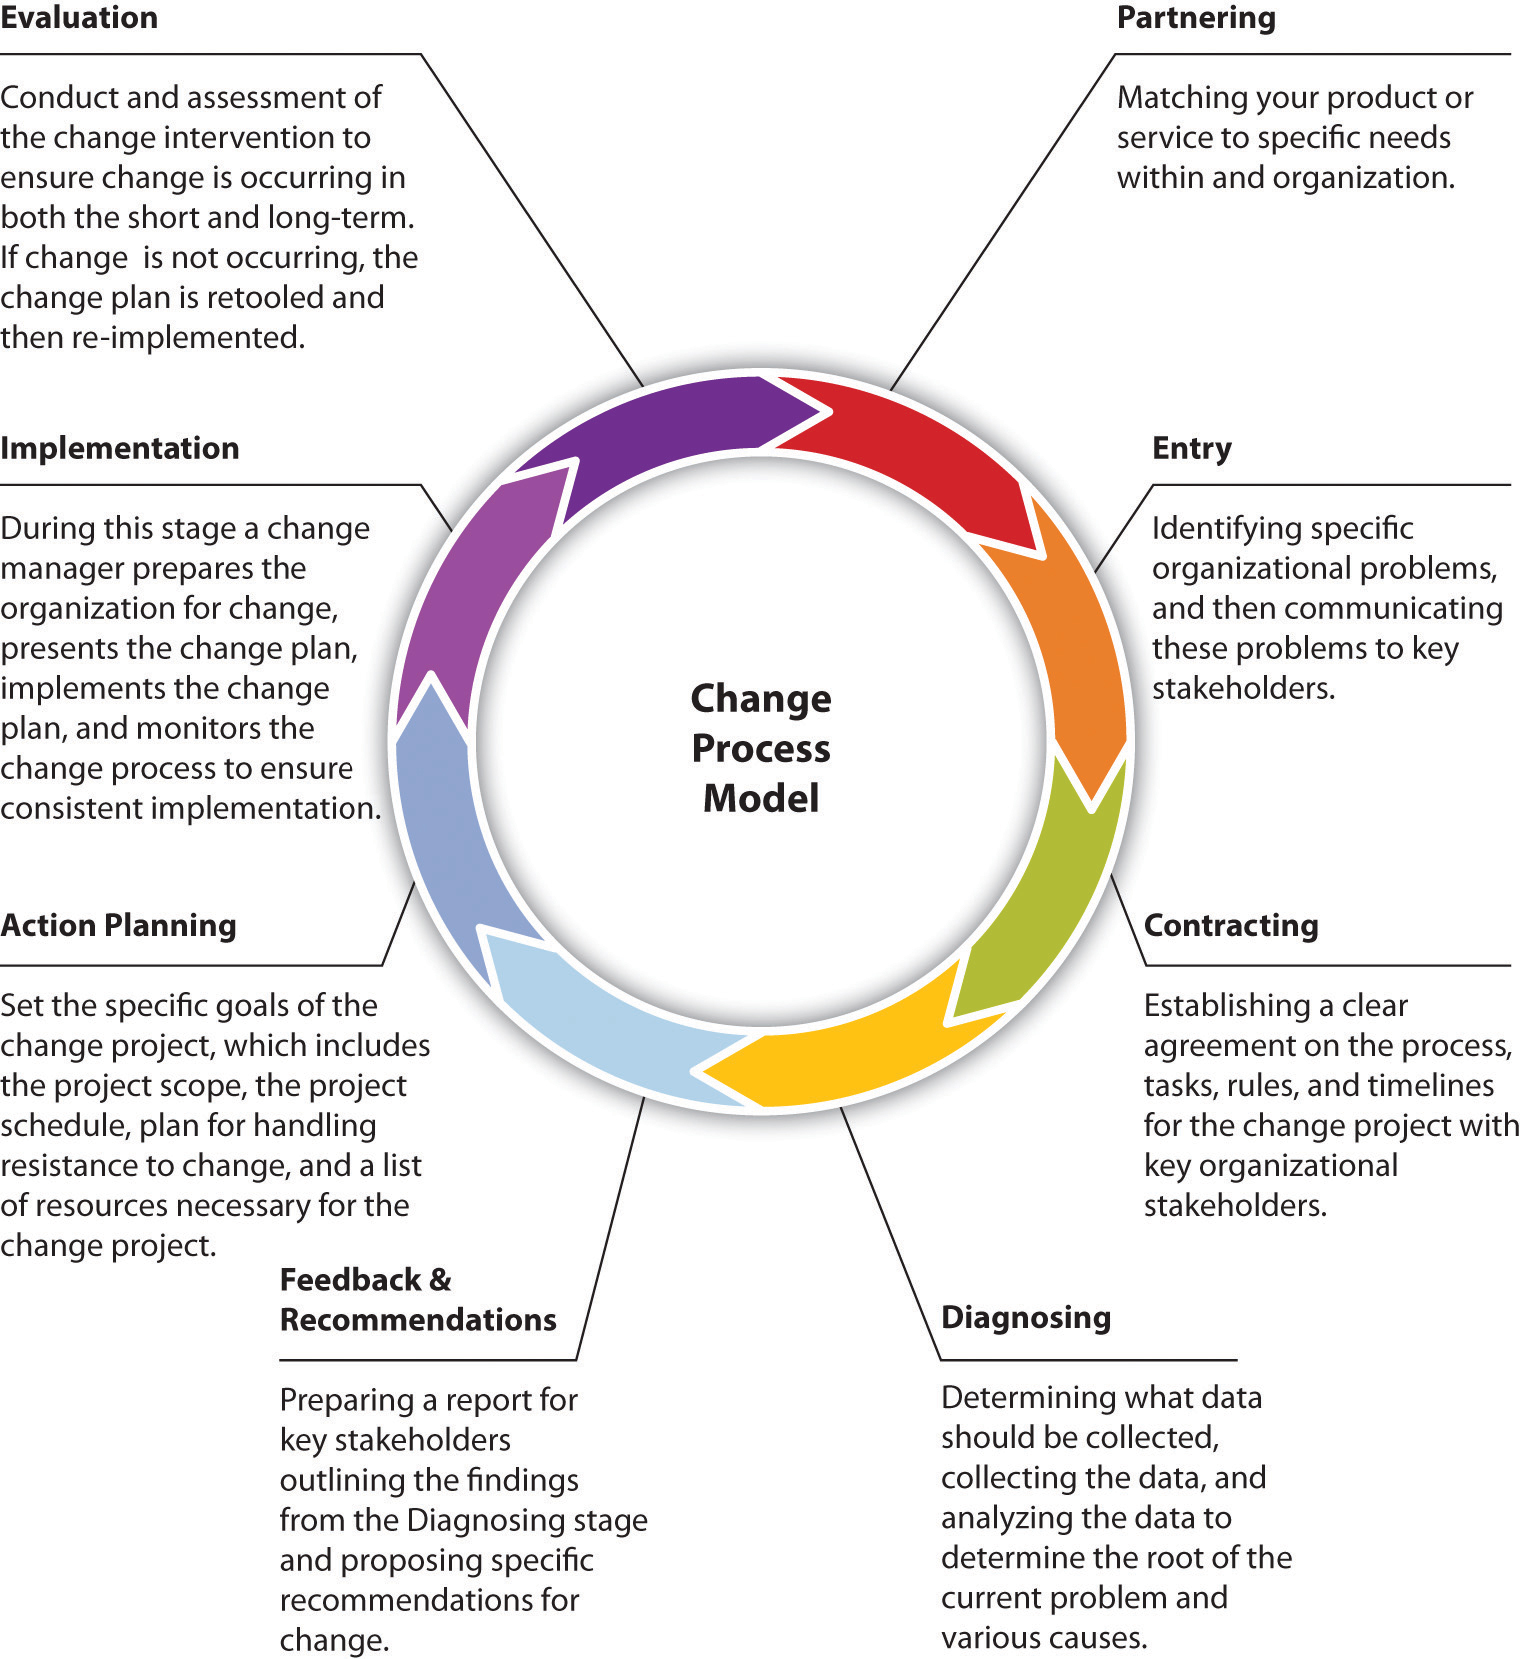 organizational communication theory research and practice  figure 15 1 change process model